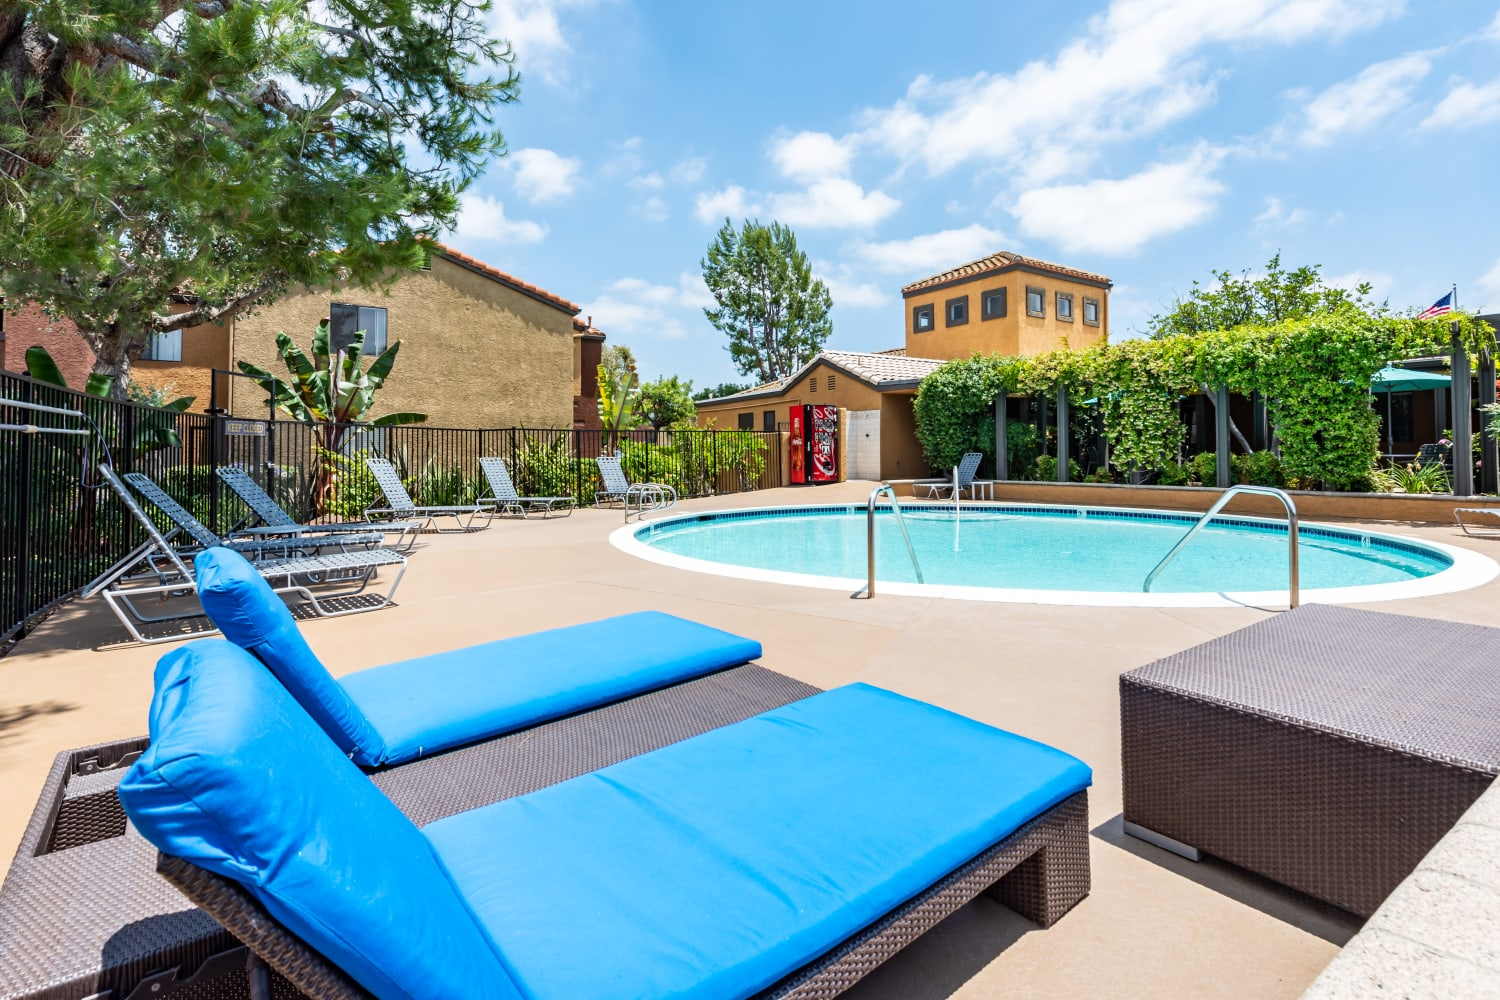 Community pool and spa at The Villas at Rowland Heights in Rowland Heights, California